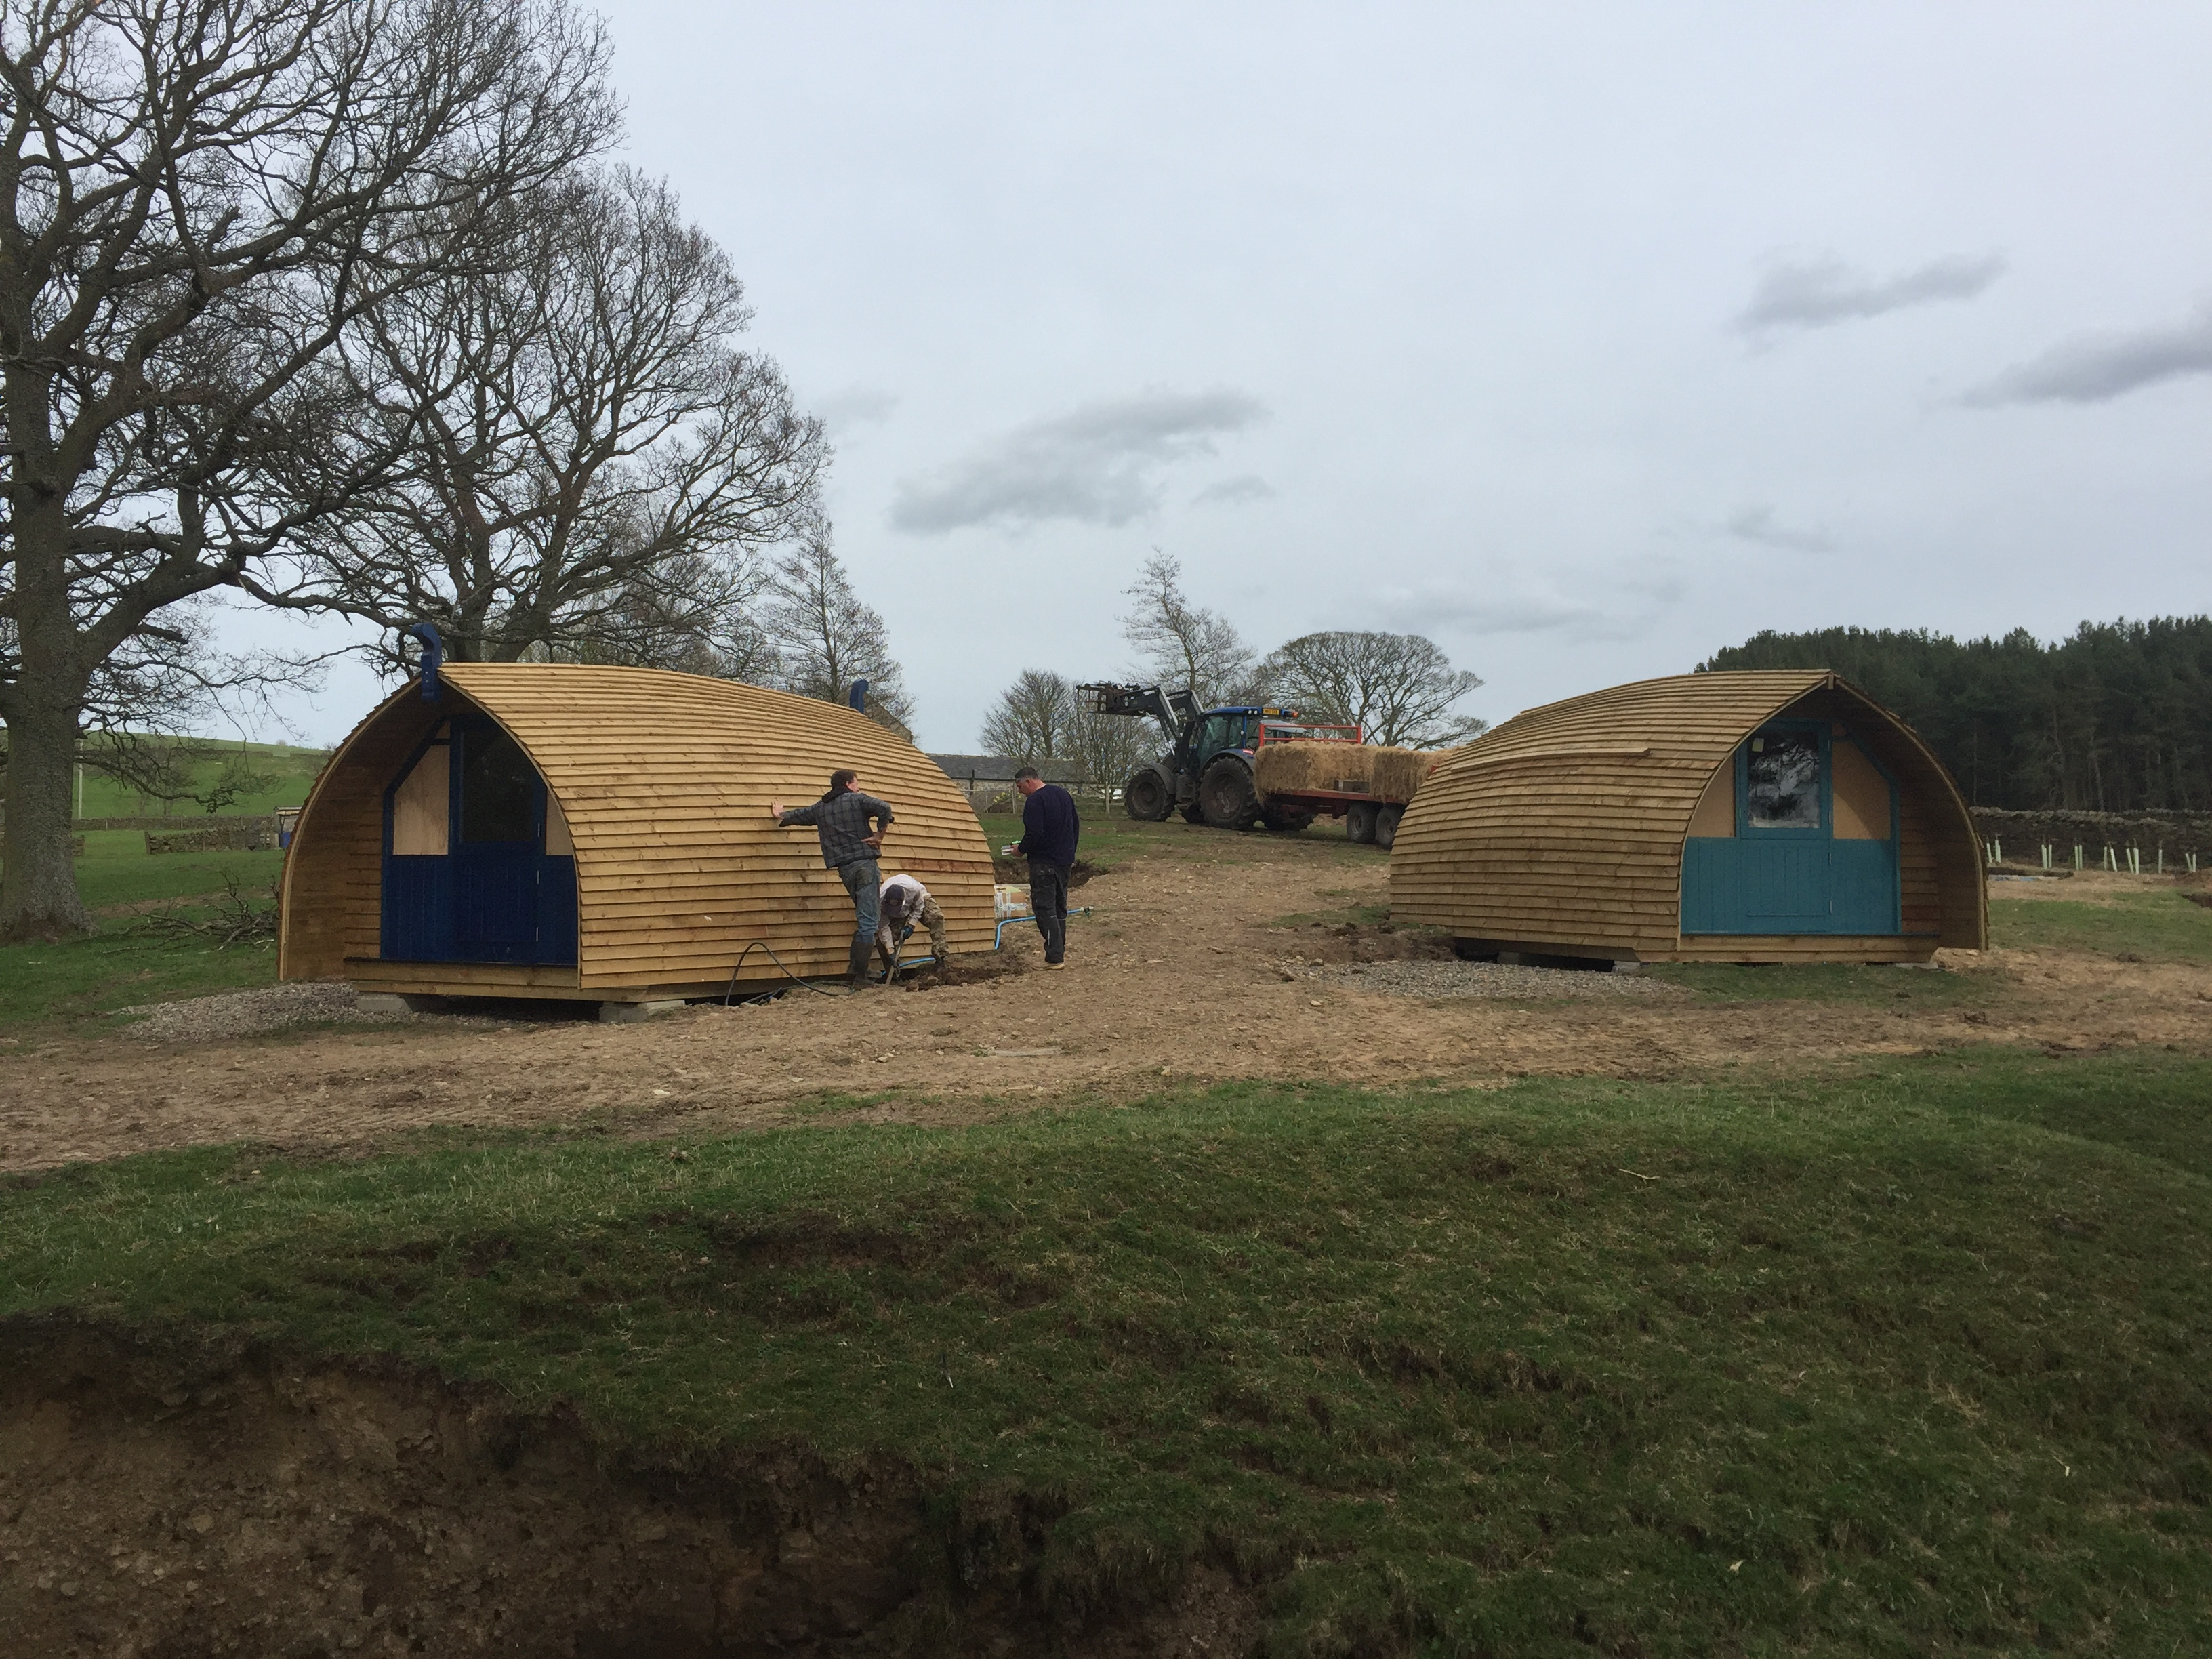 Two glamping cabins being moved into position